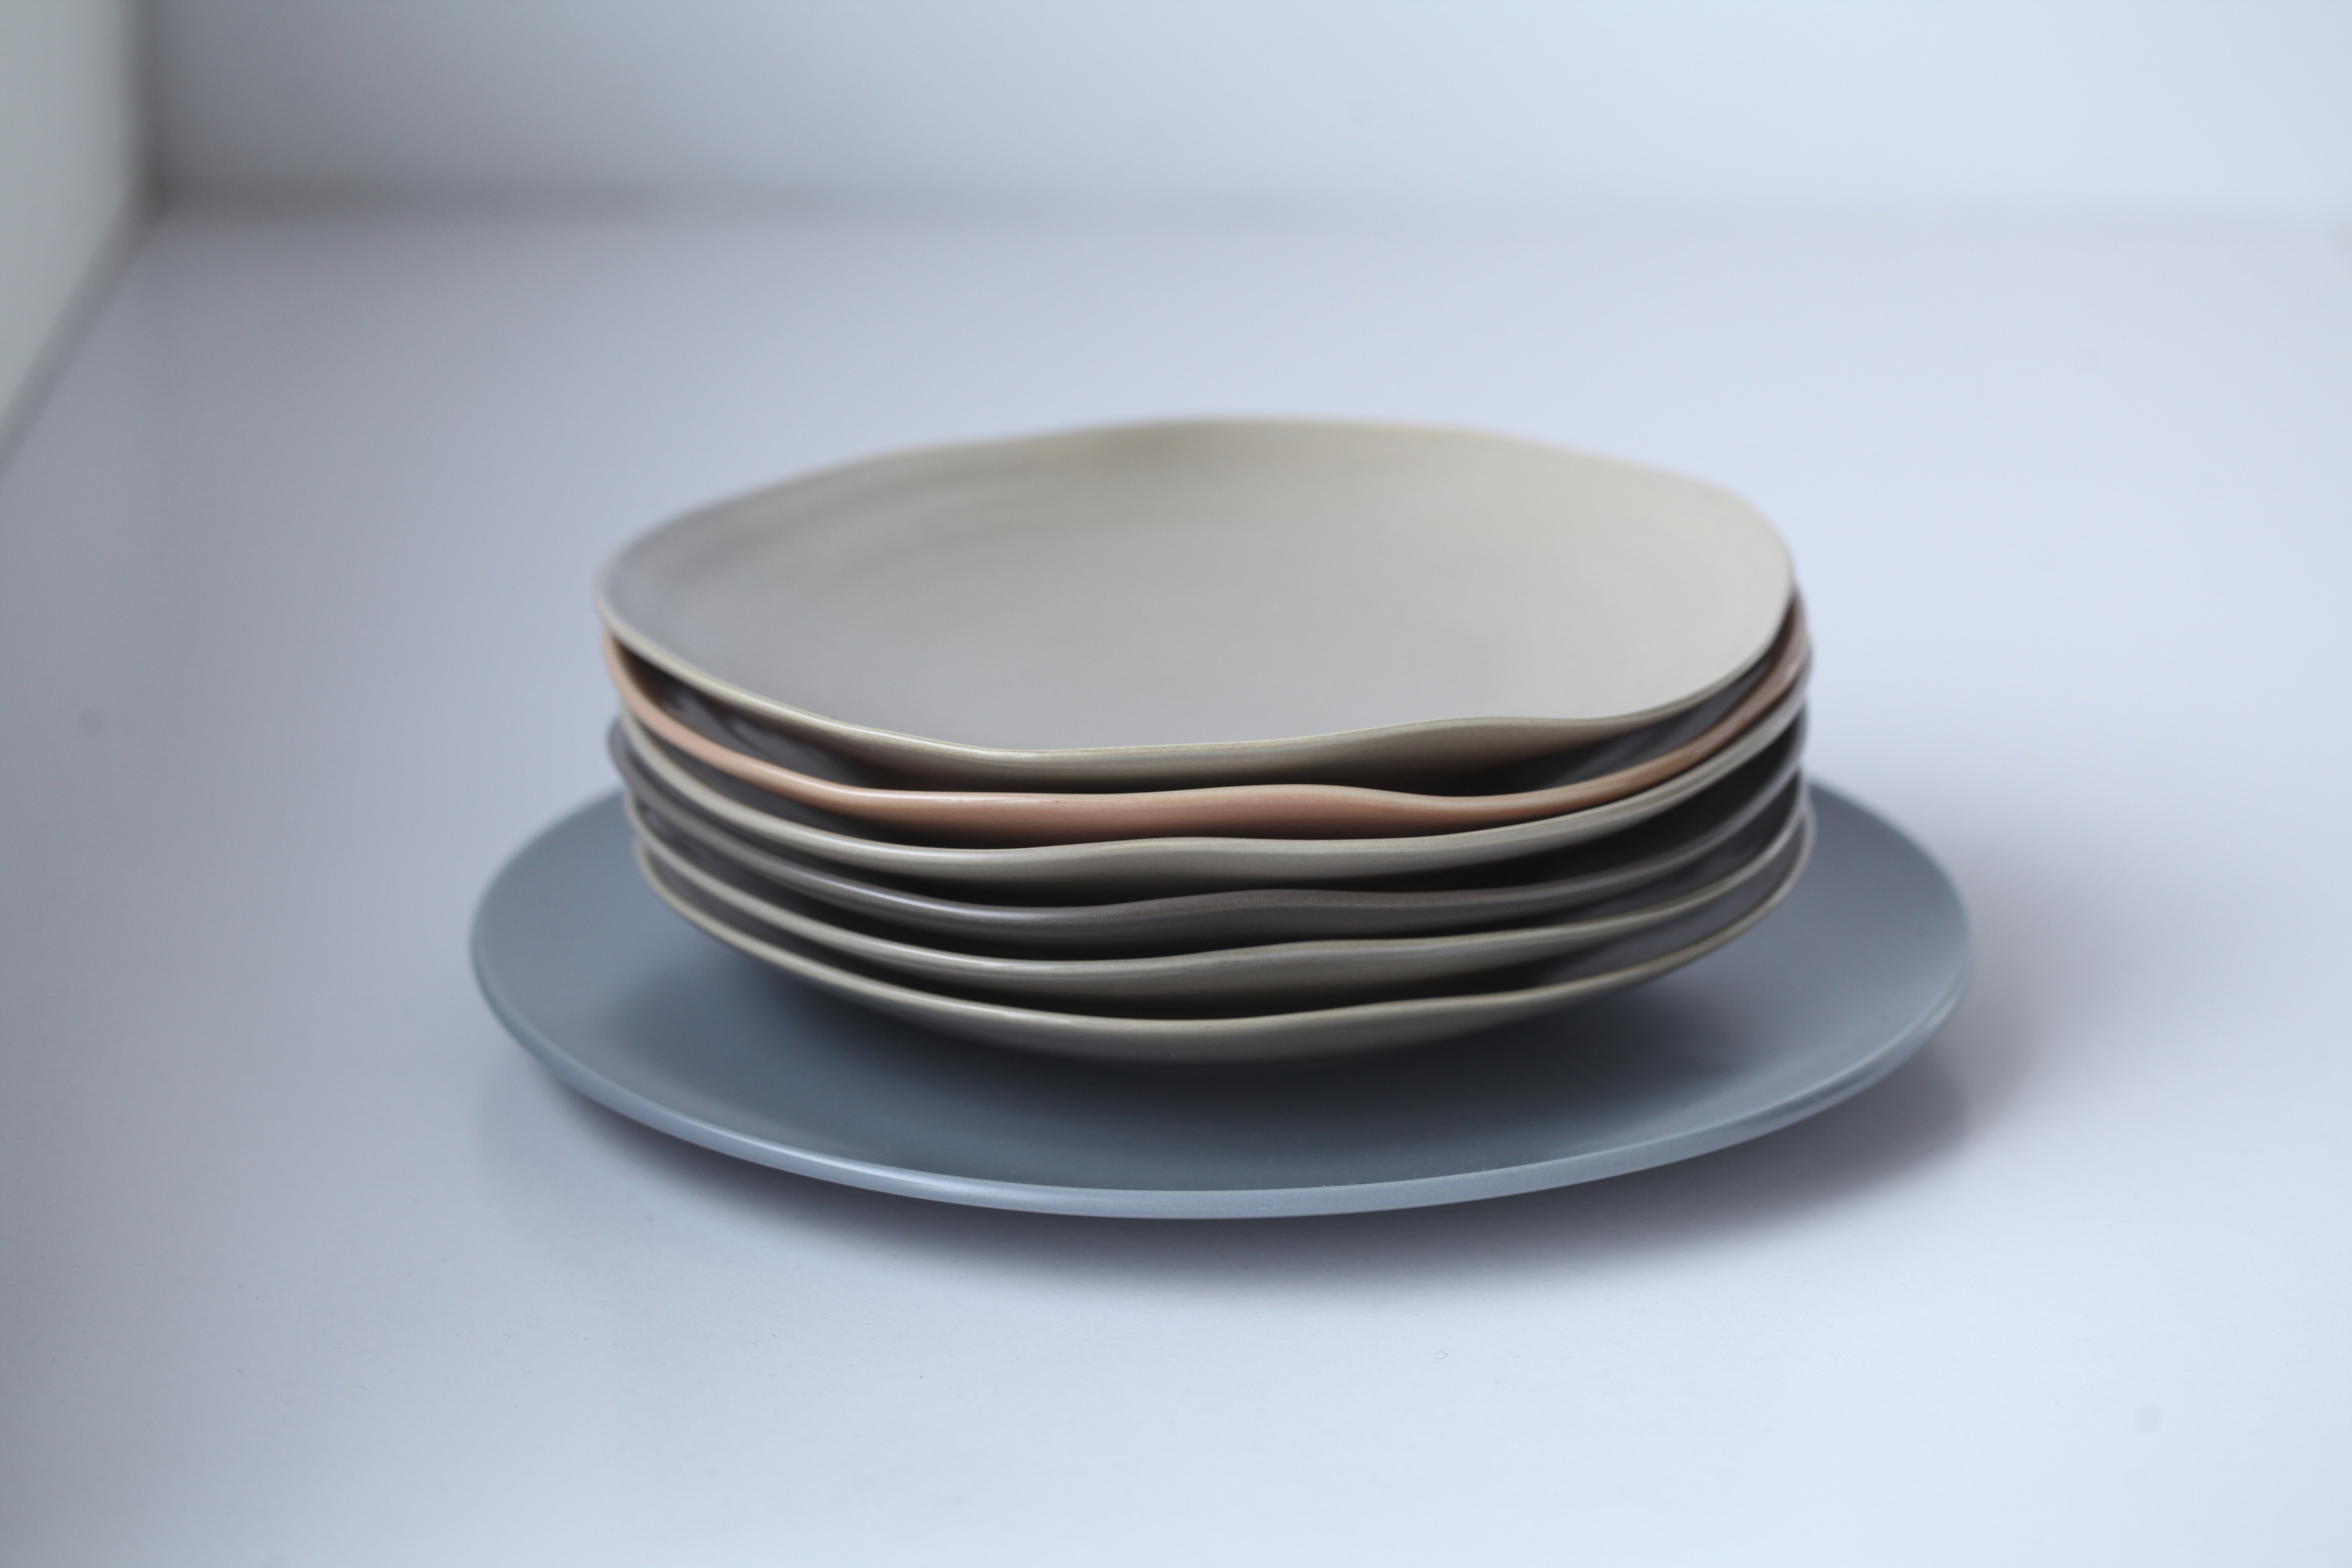 Grey-blue plate and plates